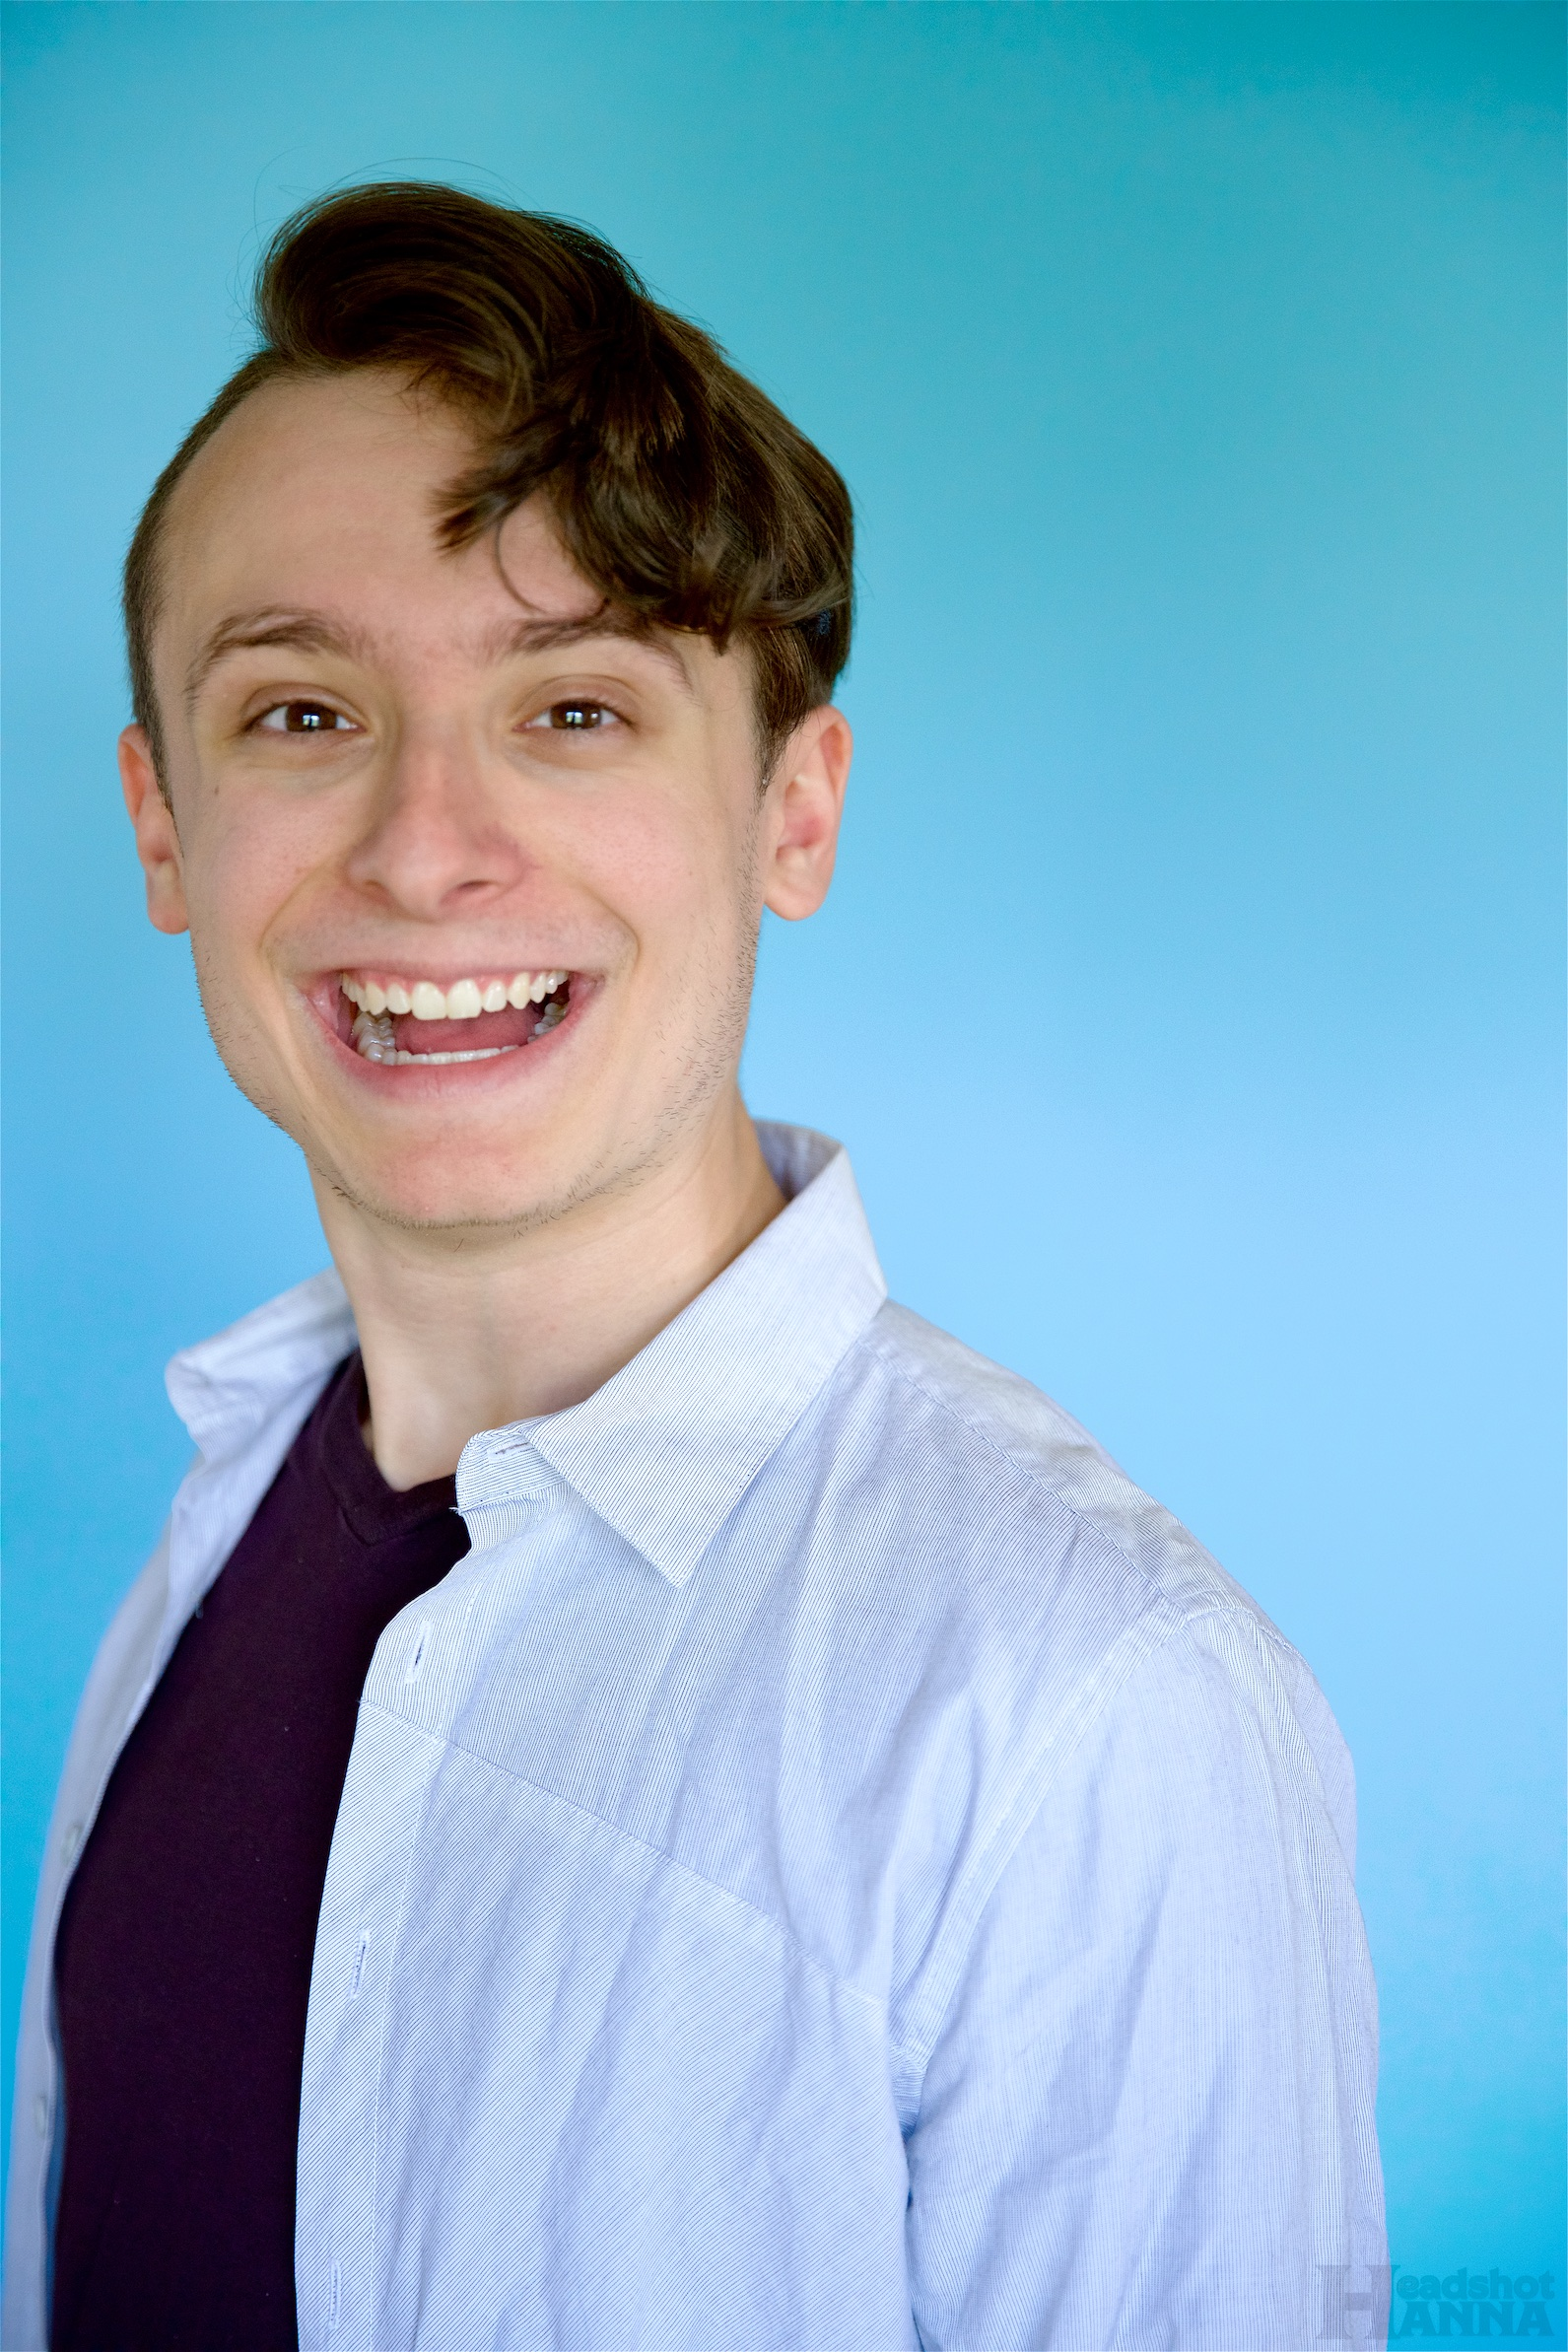 This is my excited face. And also a rejected headshot that I still kinda like.